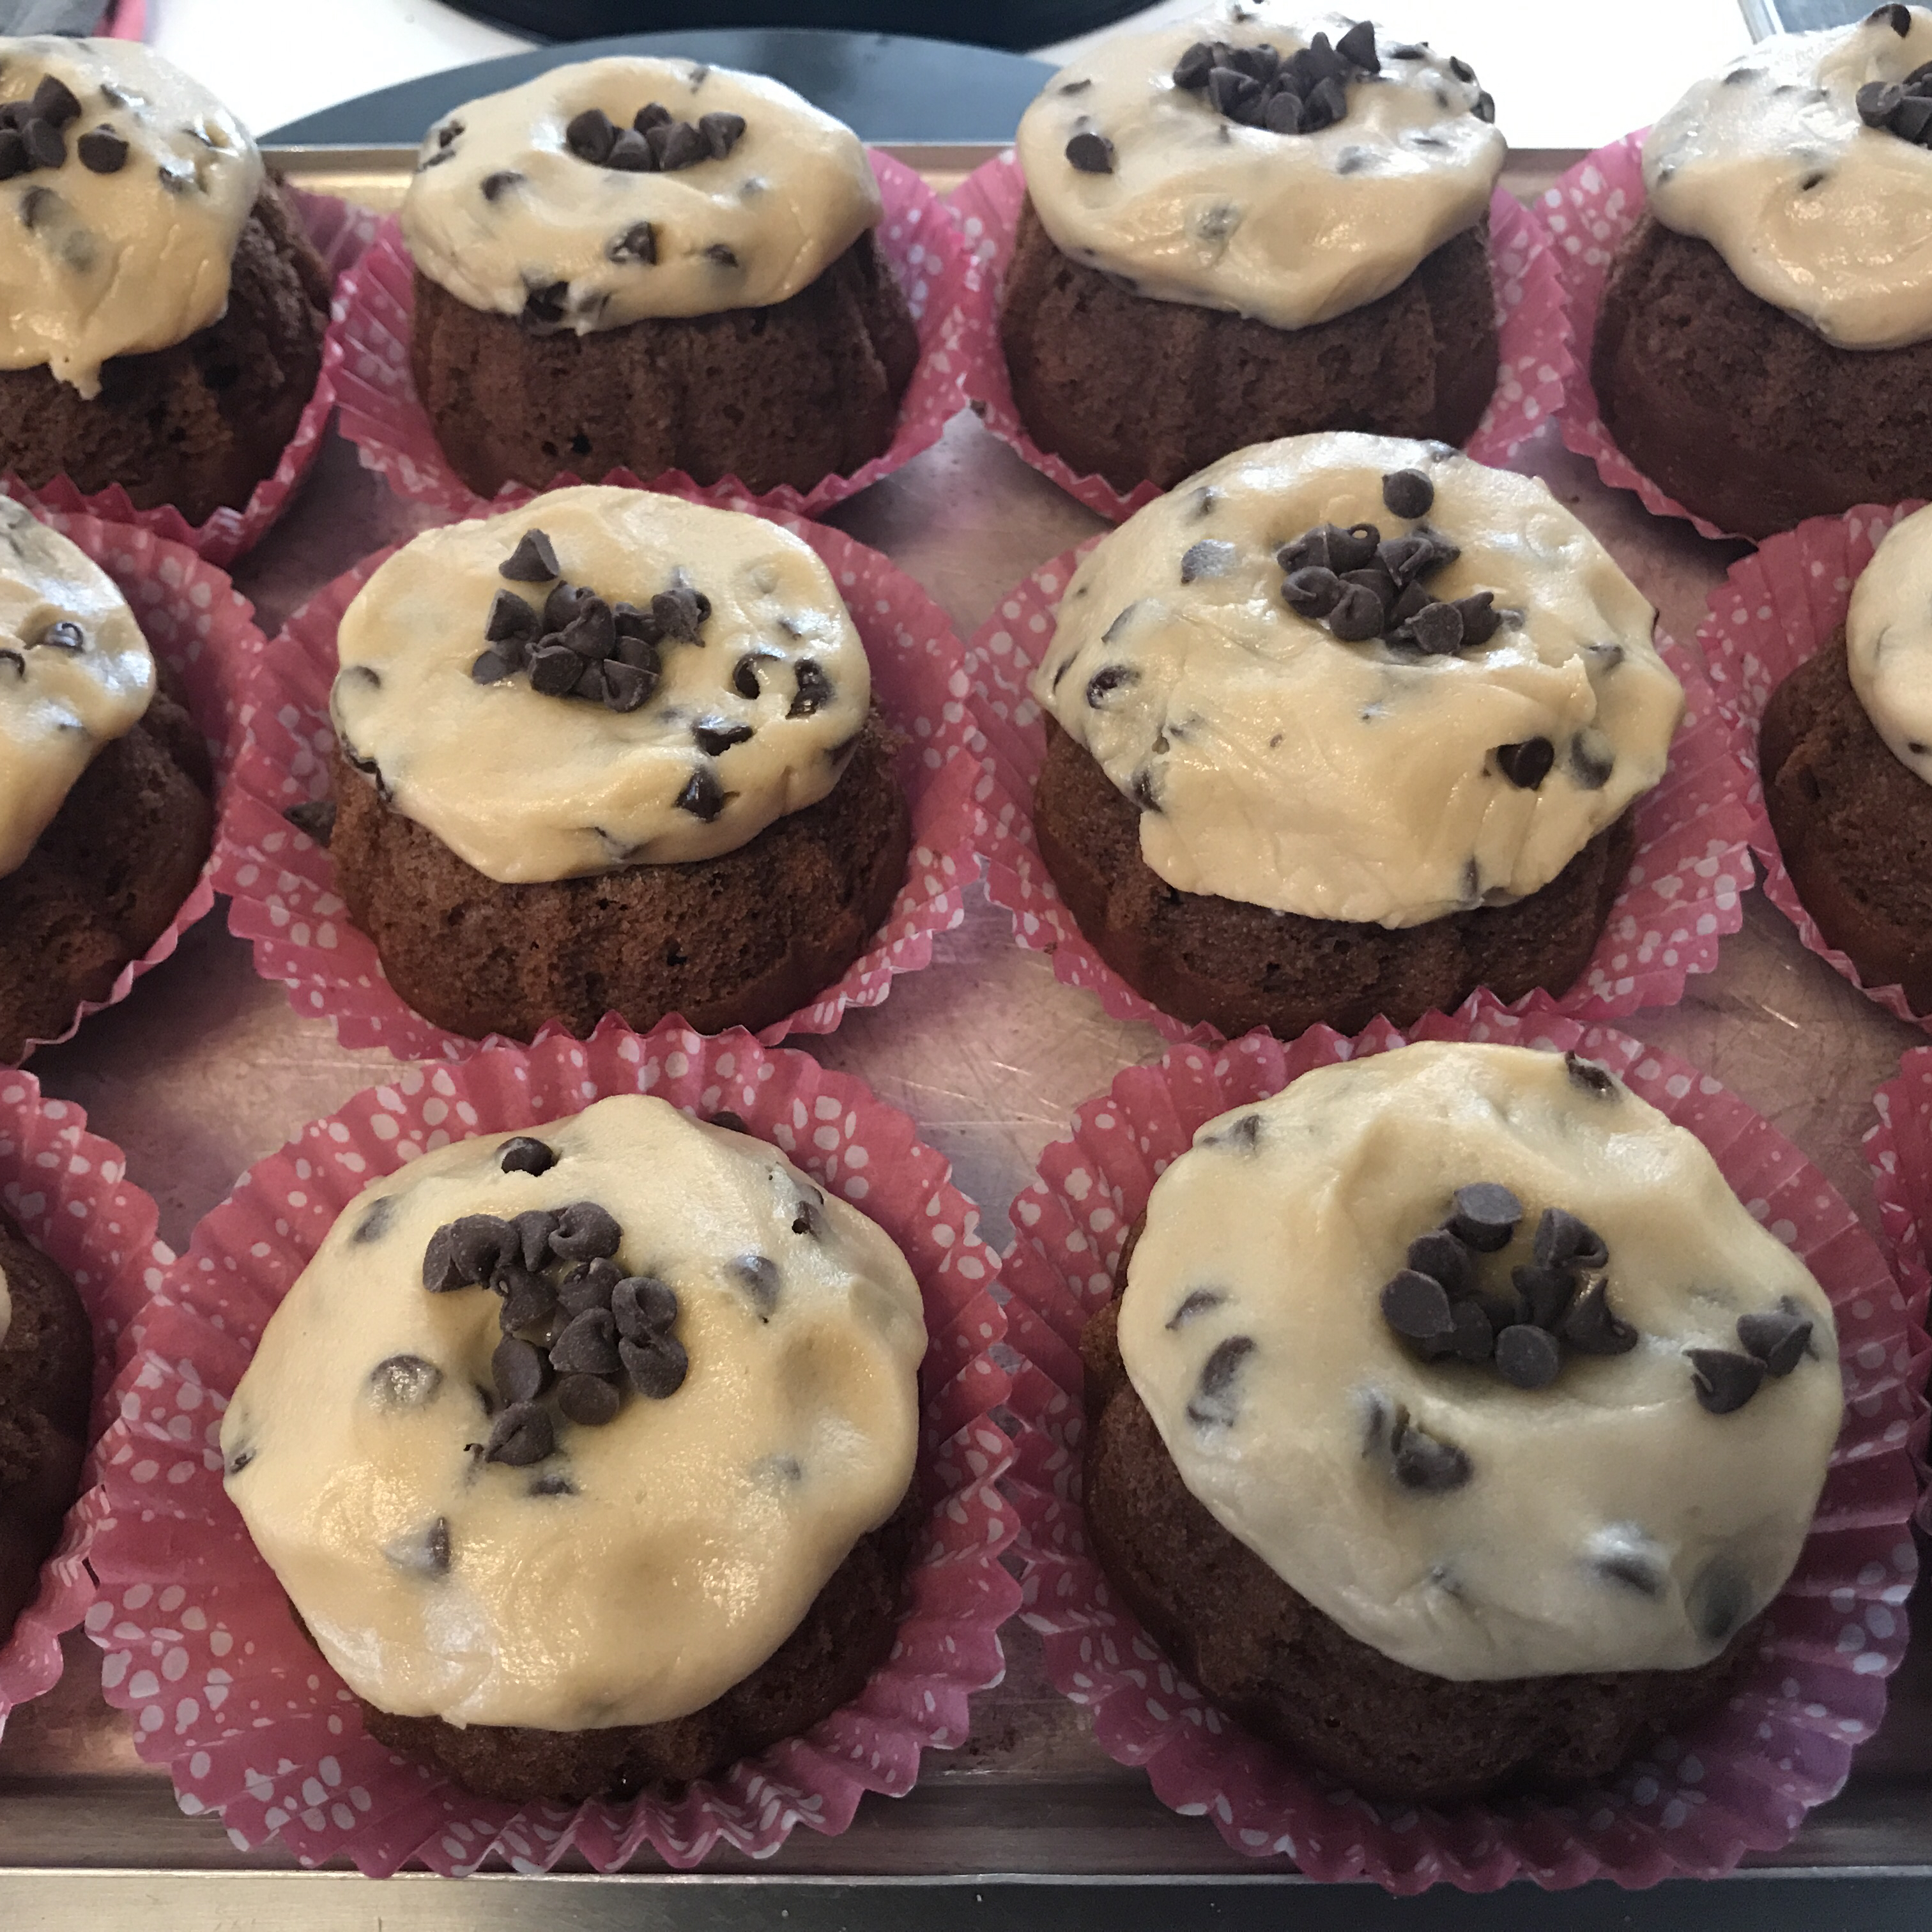 Chocolate Chip Cookie Dough Frosting shireehiebp